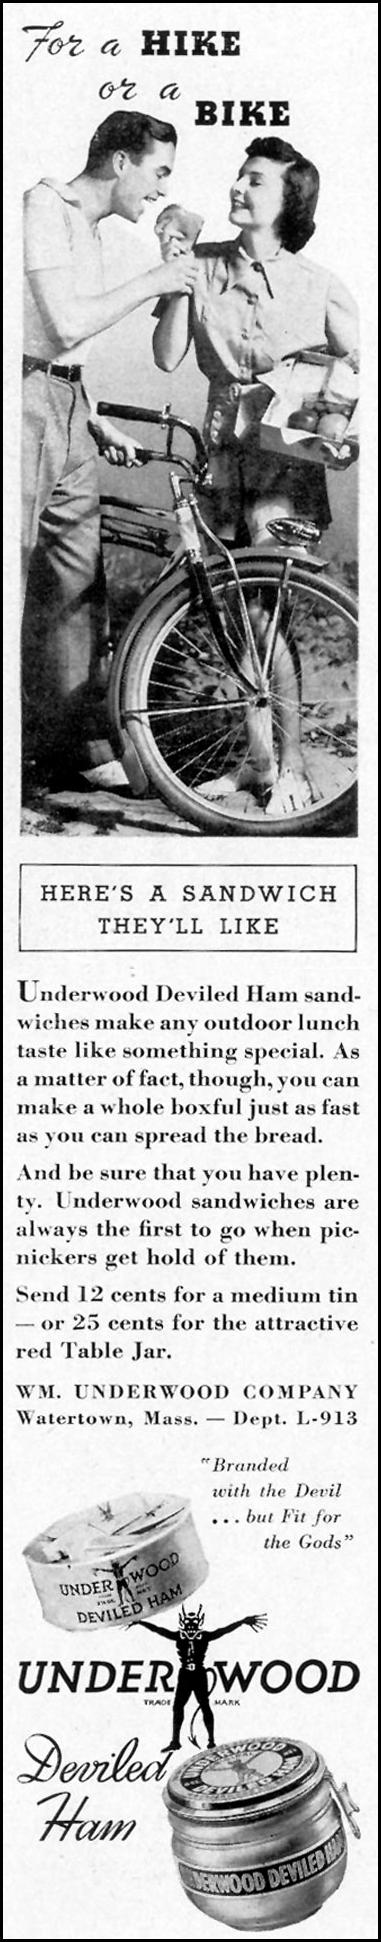 UNDERWOOD DEVILED HAM LIFE 09/13/1937 p. 9